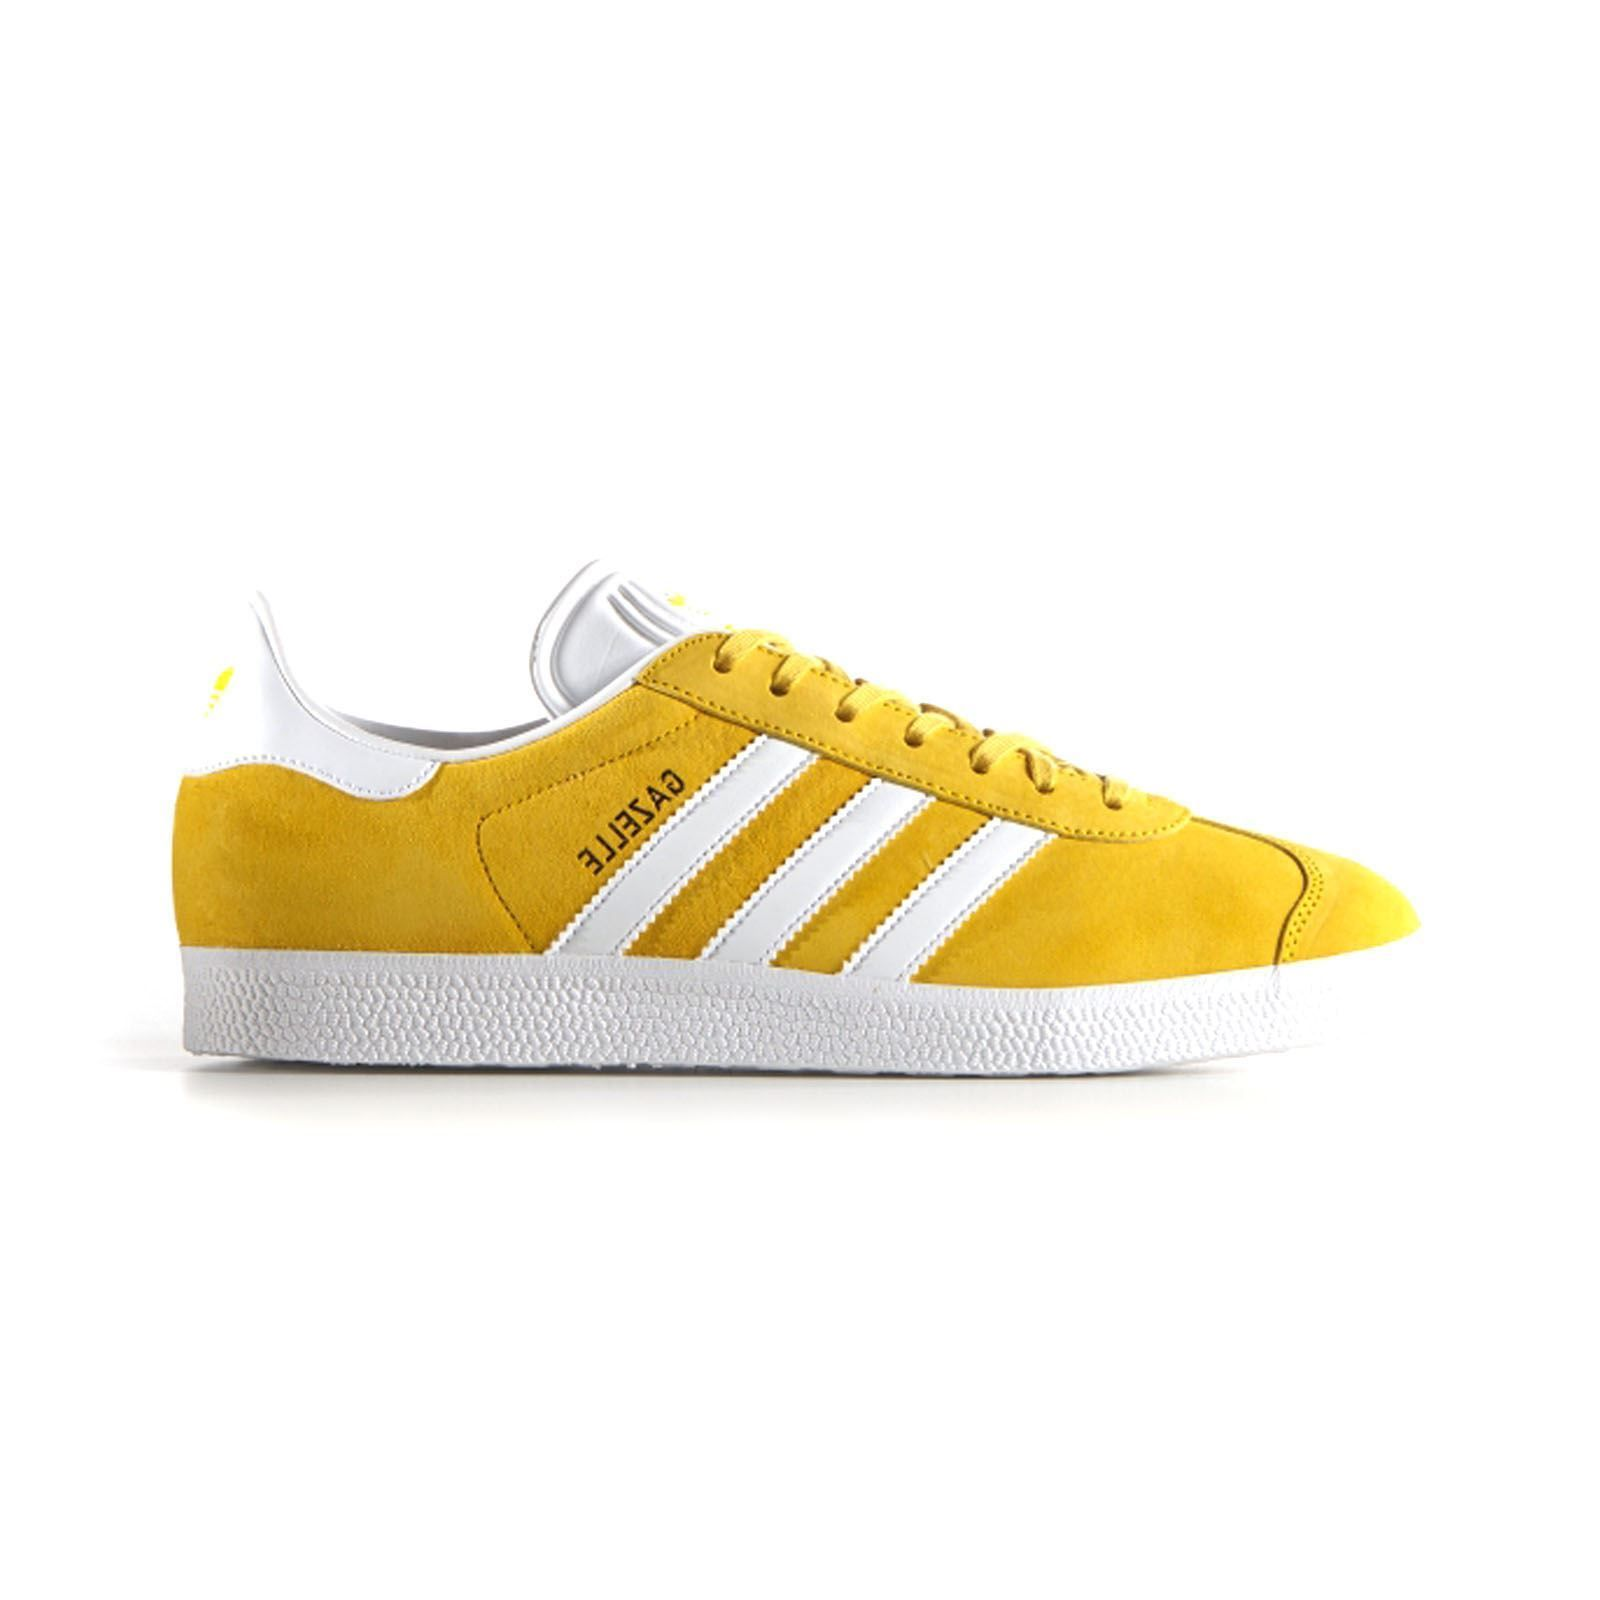 ADIDAS ORIGINALS Gazelle - Baskets - jaune | Basket jaune ...